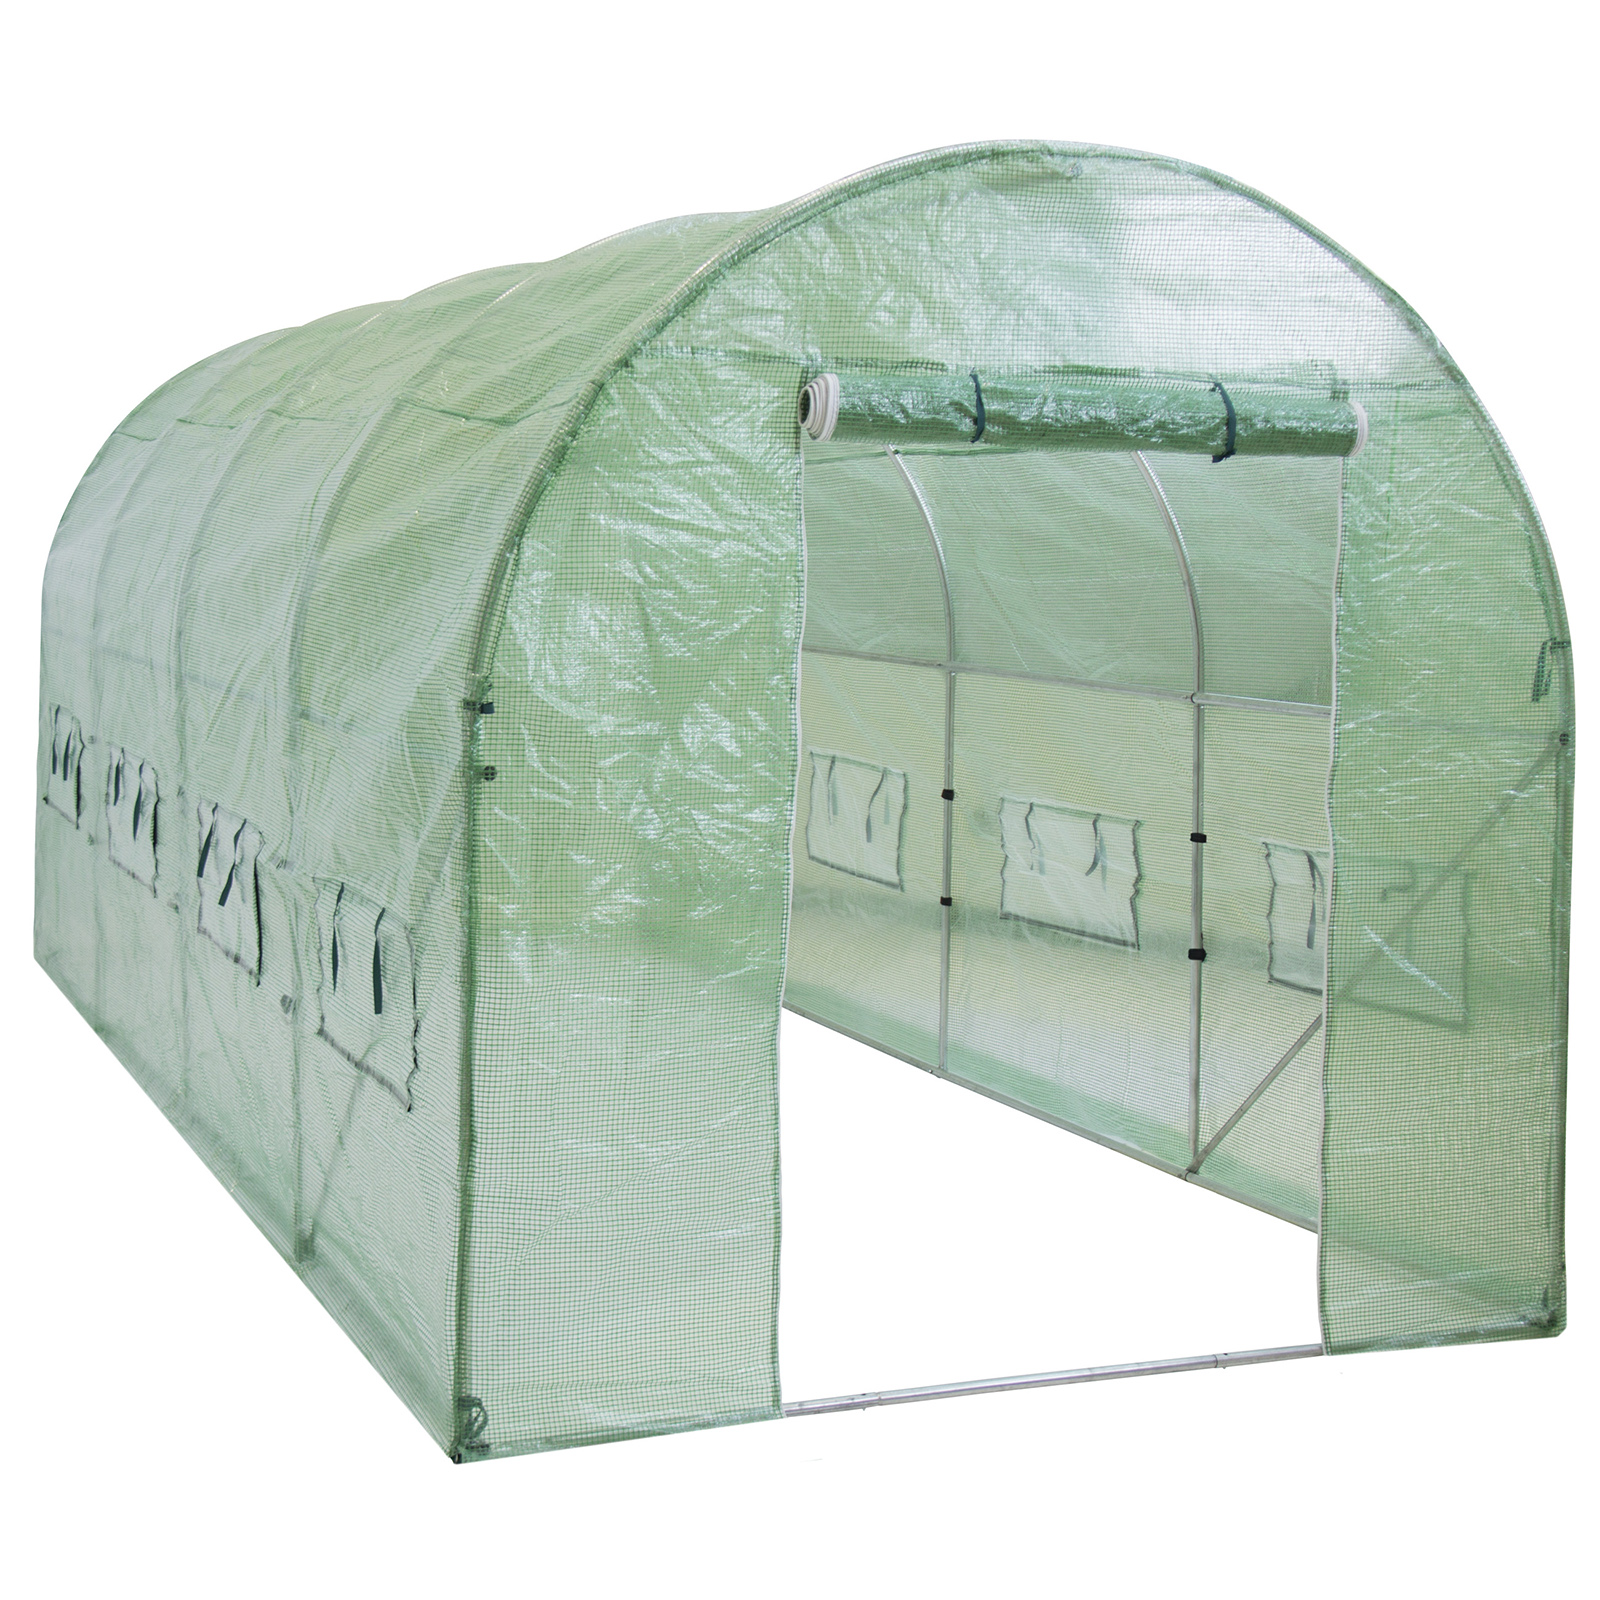 Best Choice Products 15x7x7ft Portable Walk In Greenhouse Tent